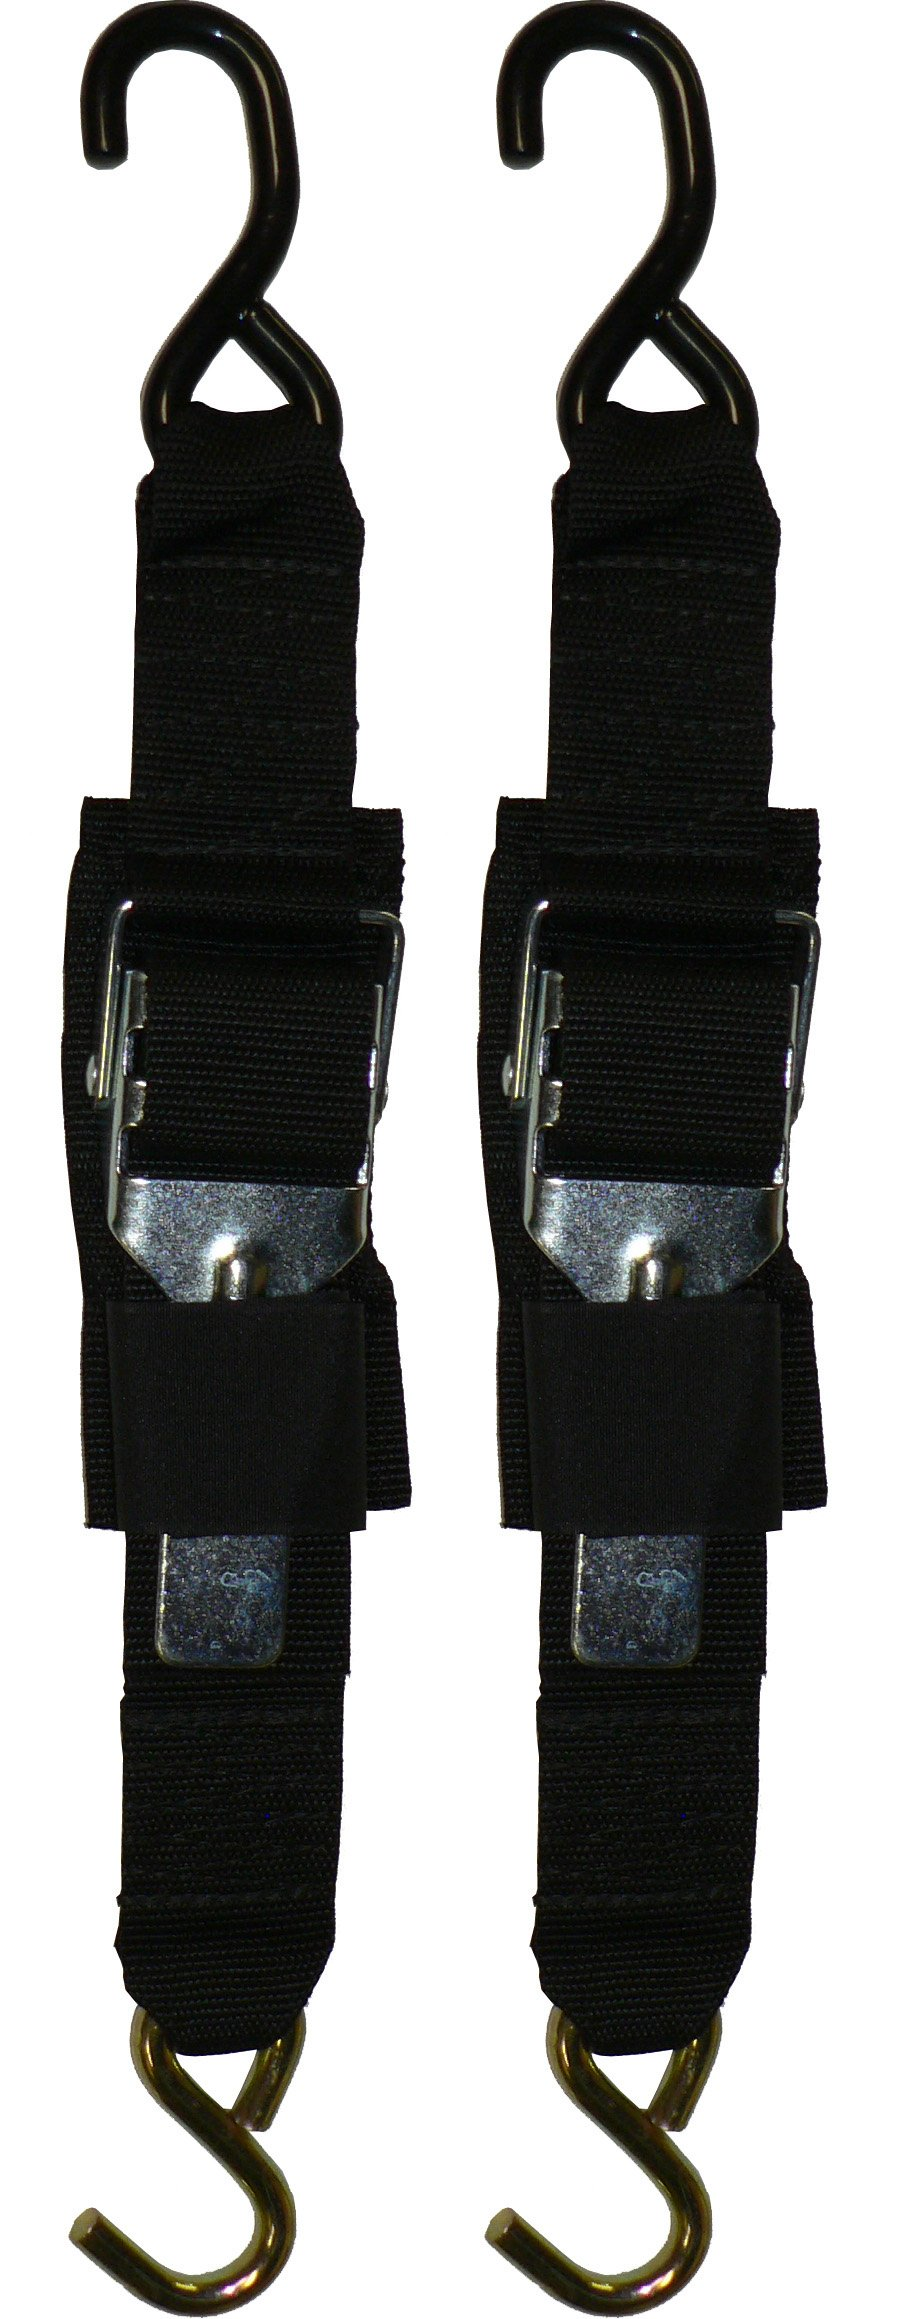 Rod Saver Paddle Buckle 2 inch Trailer Tie-Downs (4 Feet), Pair